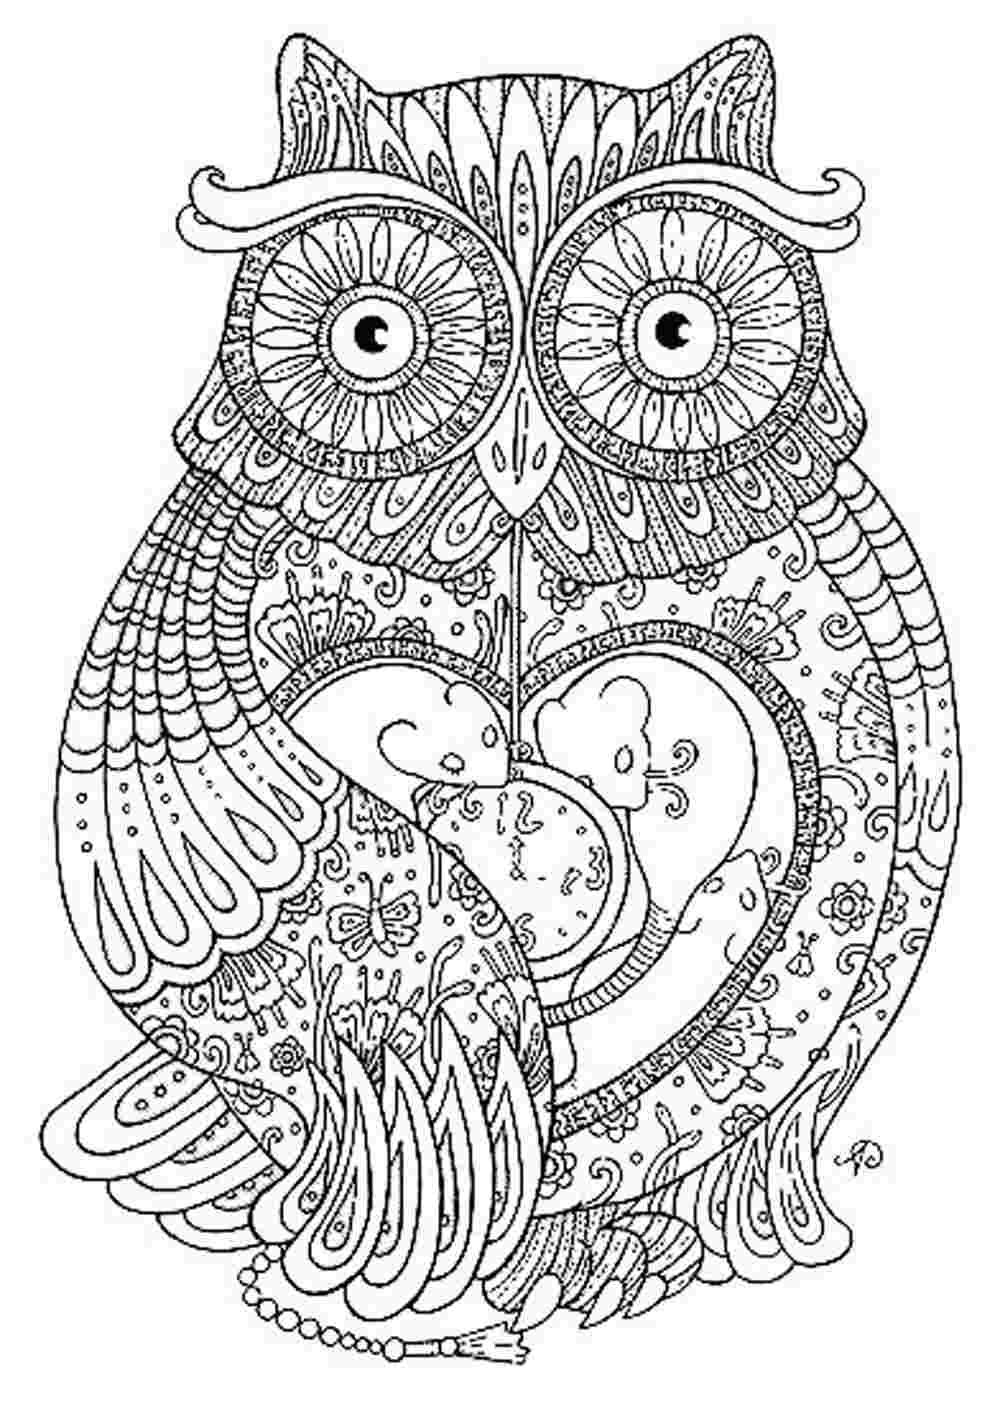 Coloring pictures for adults - Free Adult Coloring Pages